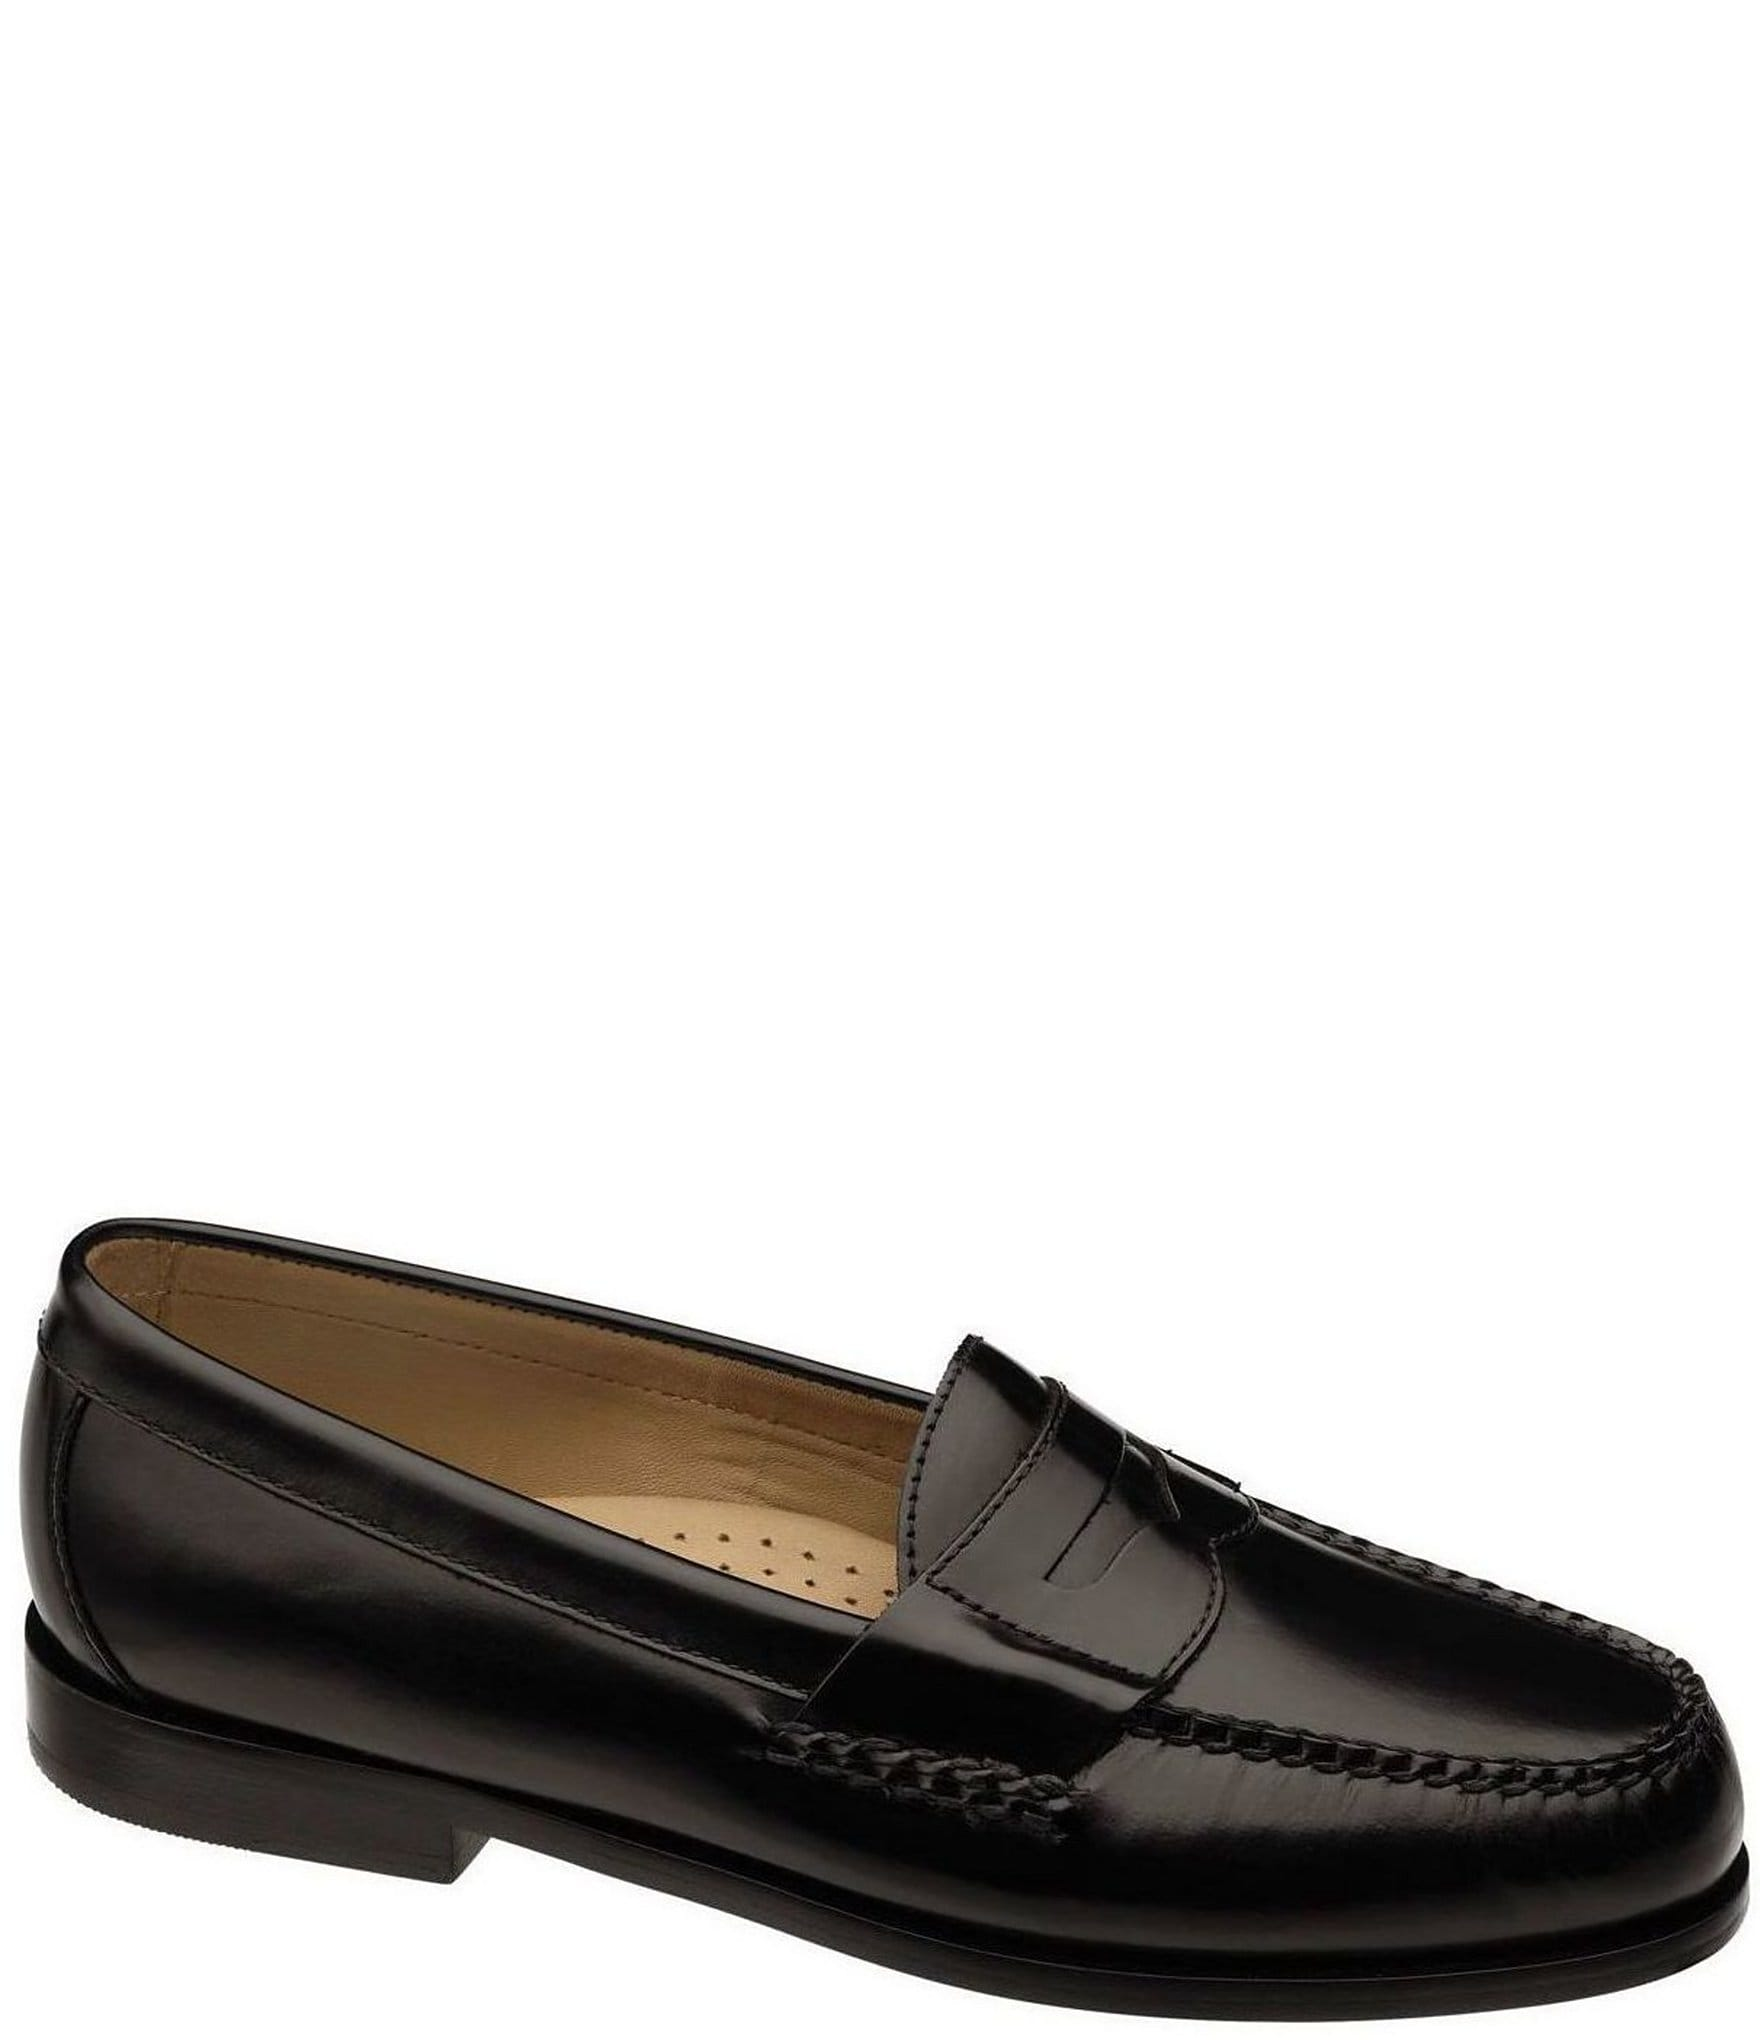 Johnston Amp Murphy Hayes Dress Penny Loafers Dillard S